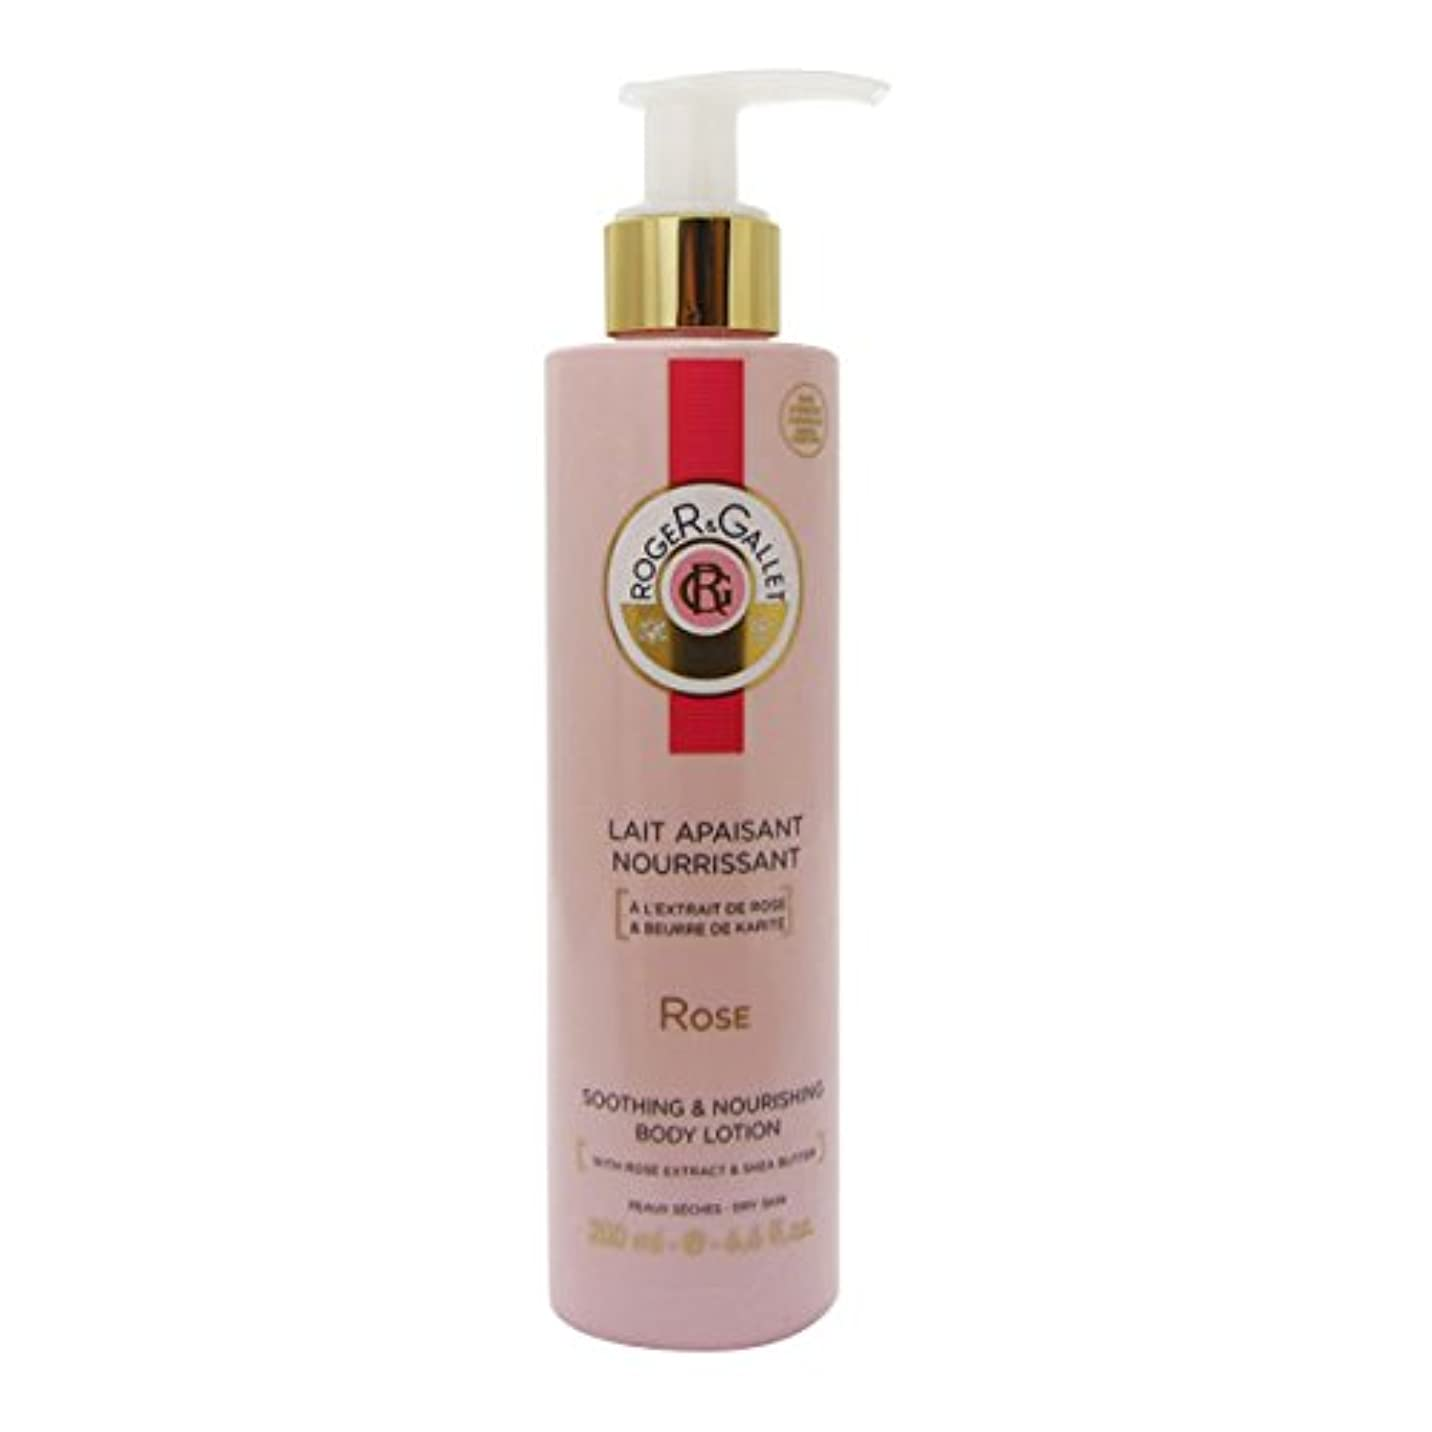 分解する毛皮見えるRoger Gallet Rose Soothing And Nourishing Body Lotion 200ml [並行輸入品]